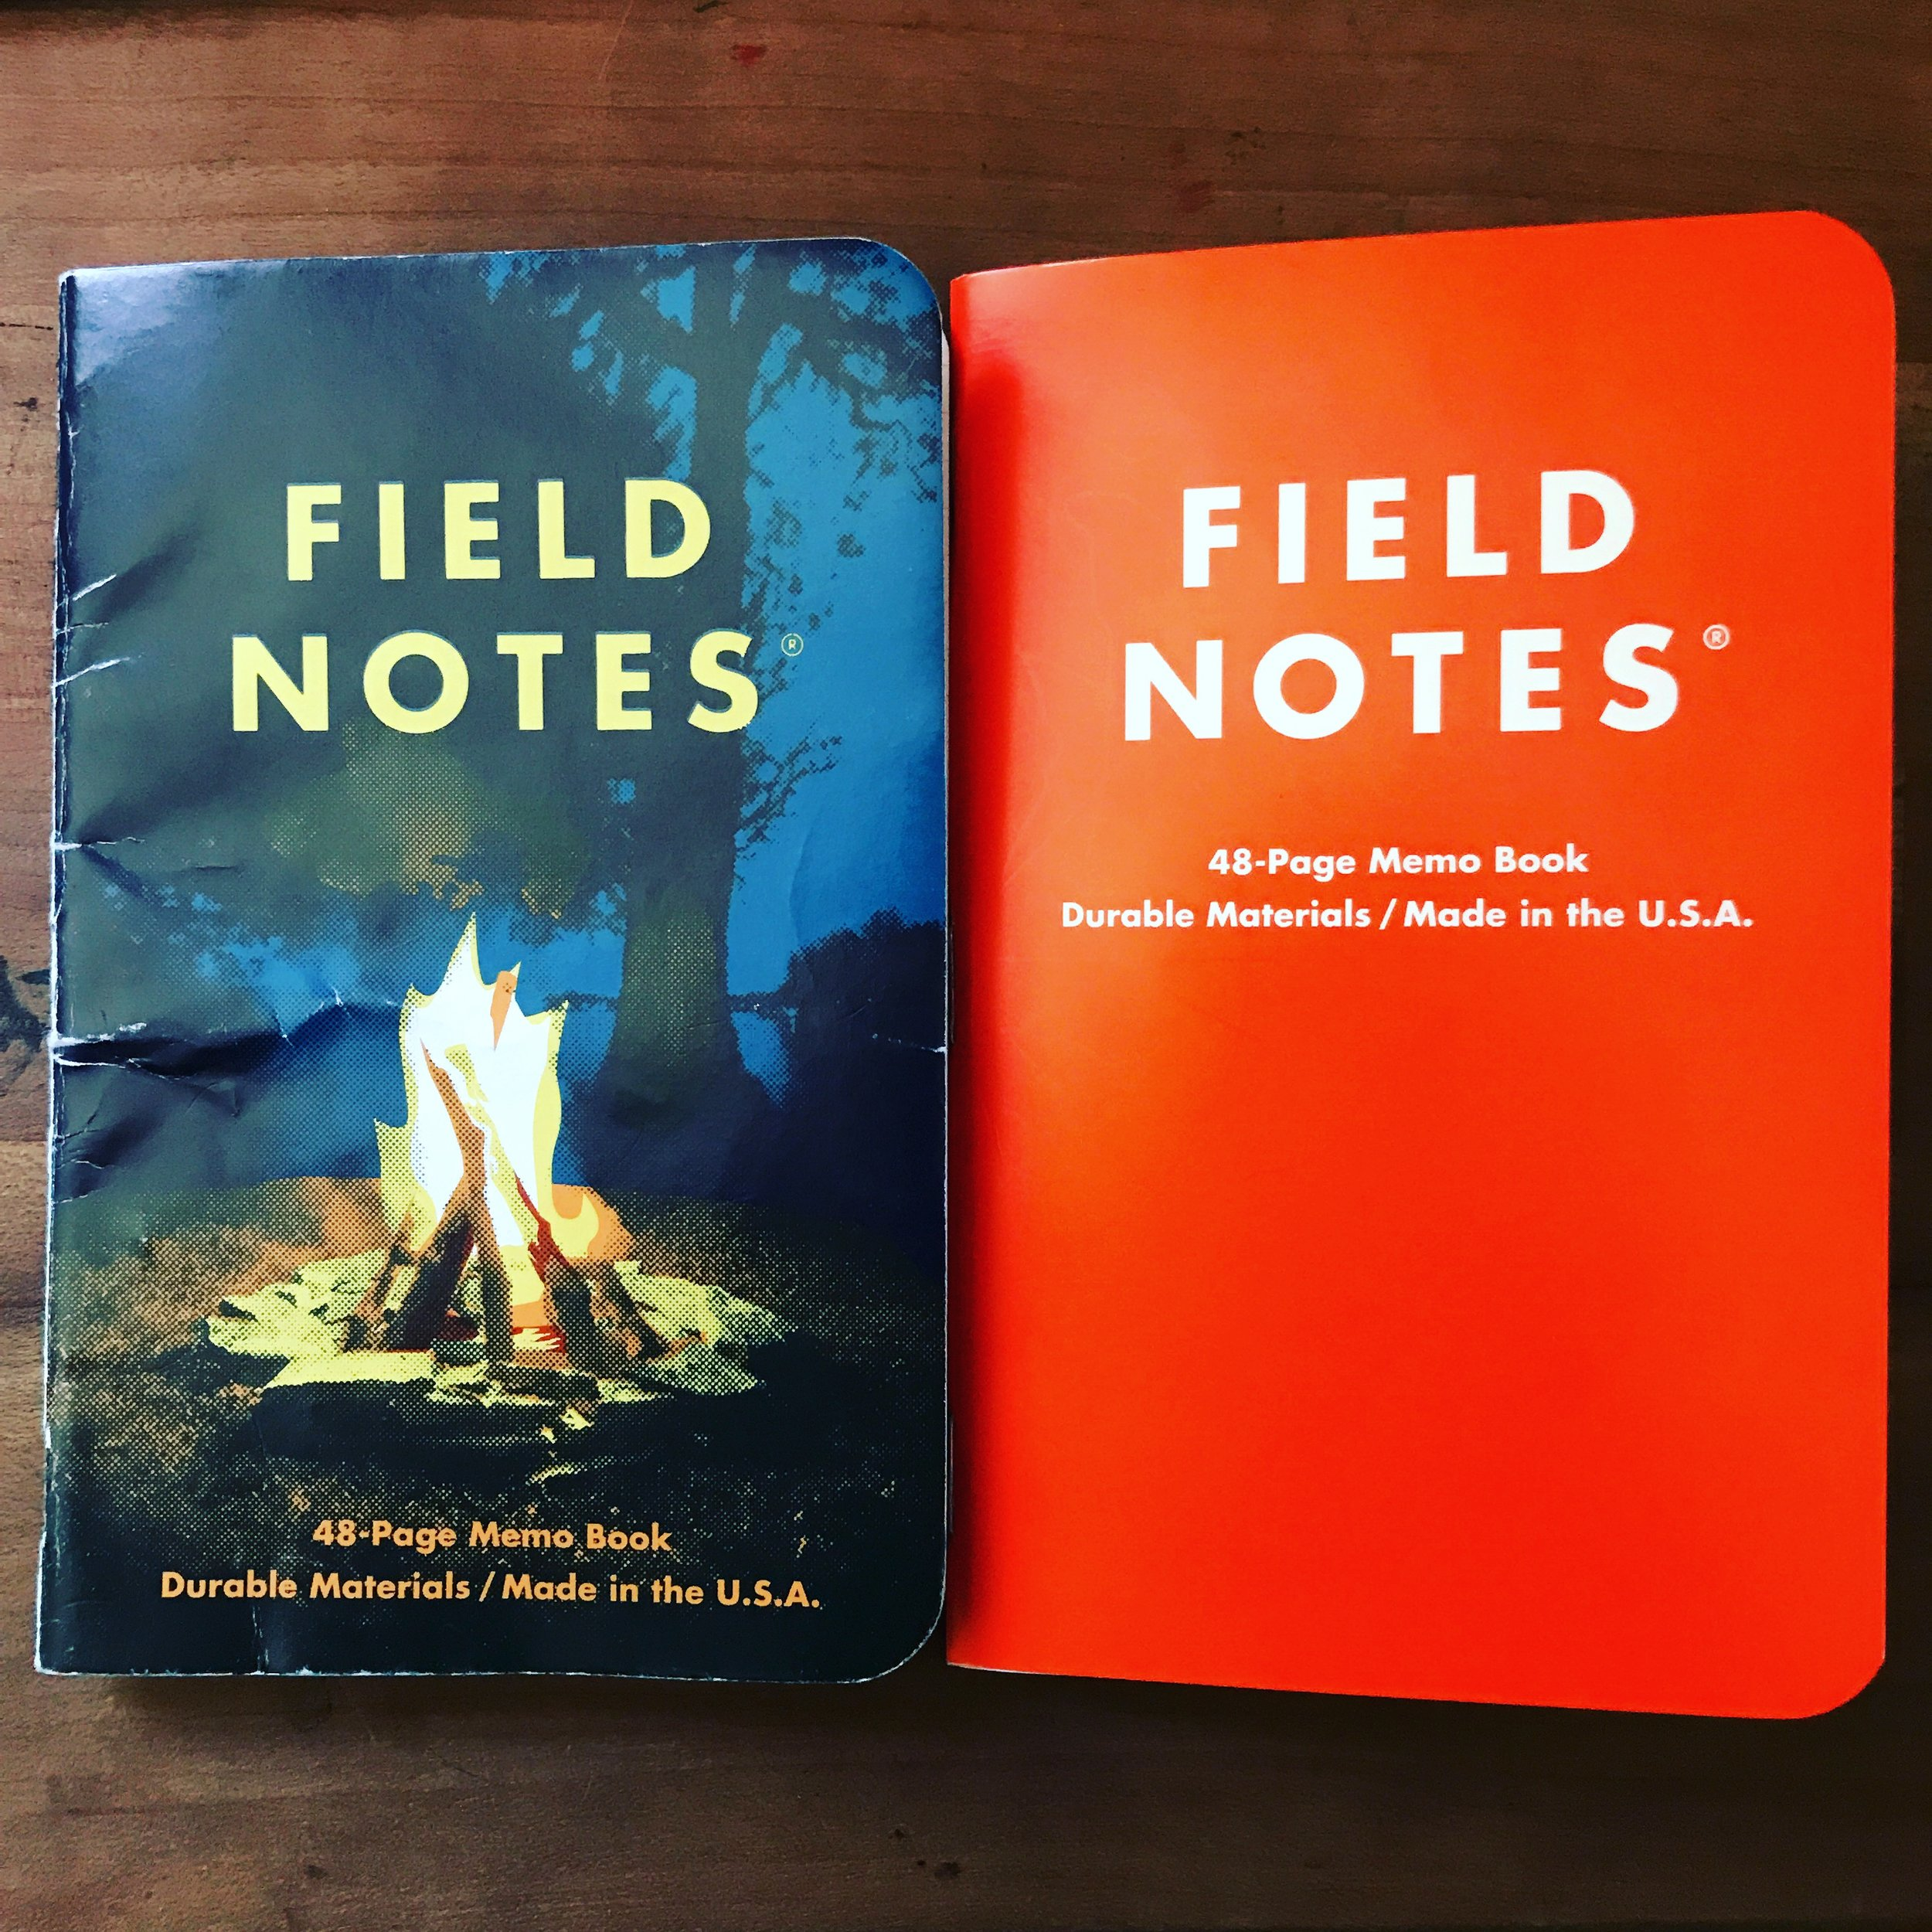 field-notes-out-in-july-30th.jpg